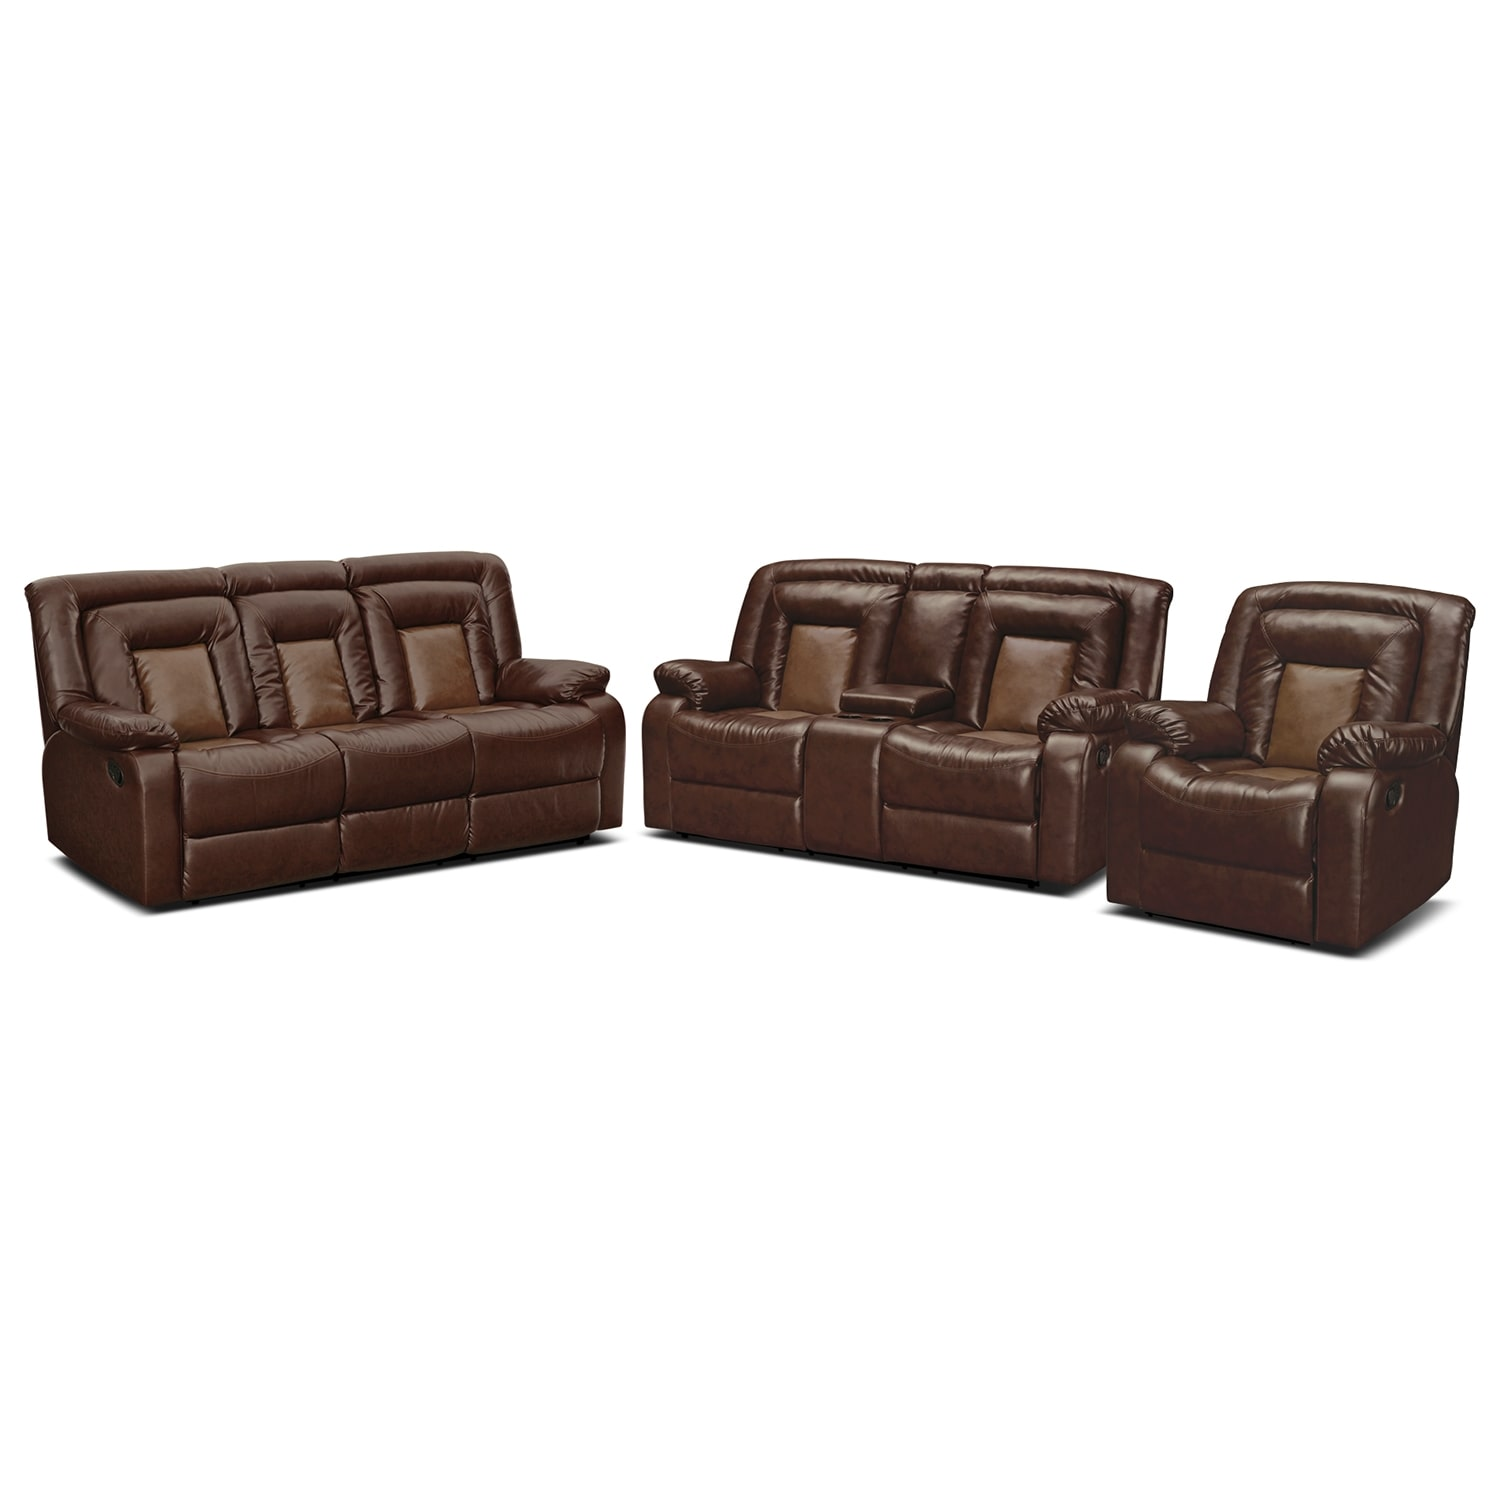 Value city furniture Reclining living room furniture